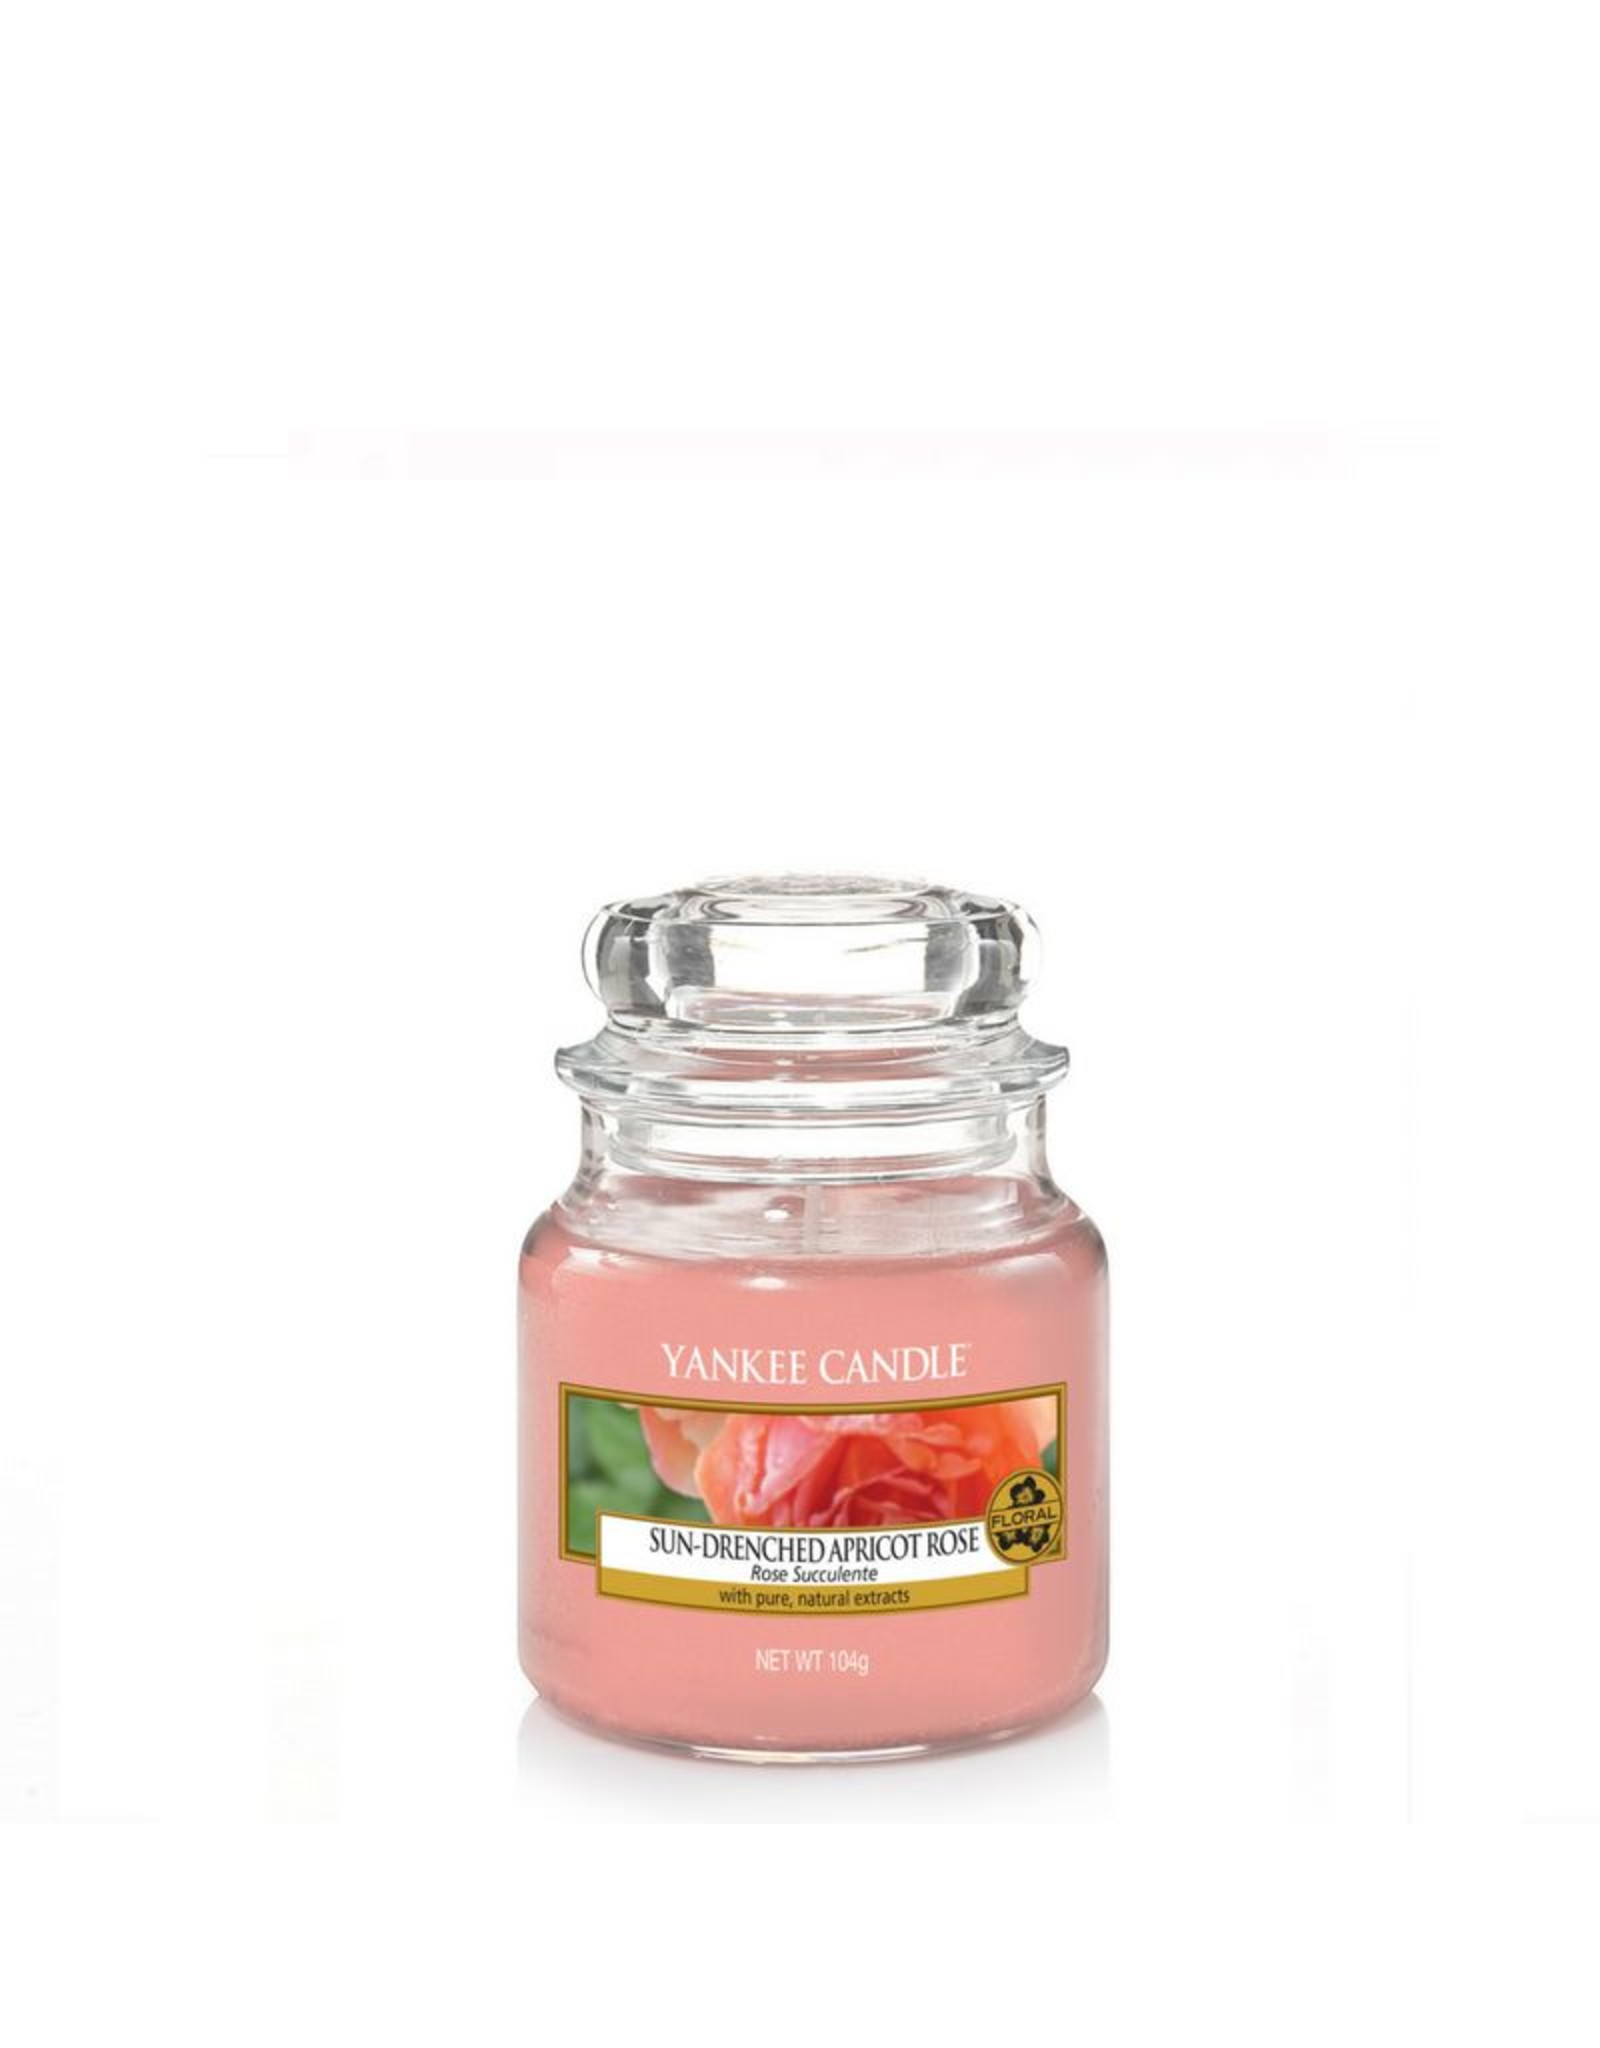 Yankee Candle Sun-Drenched Apricot Rose - Small Jar